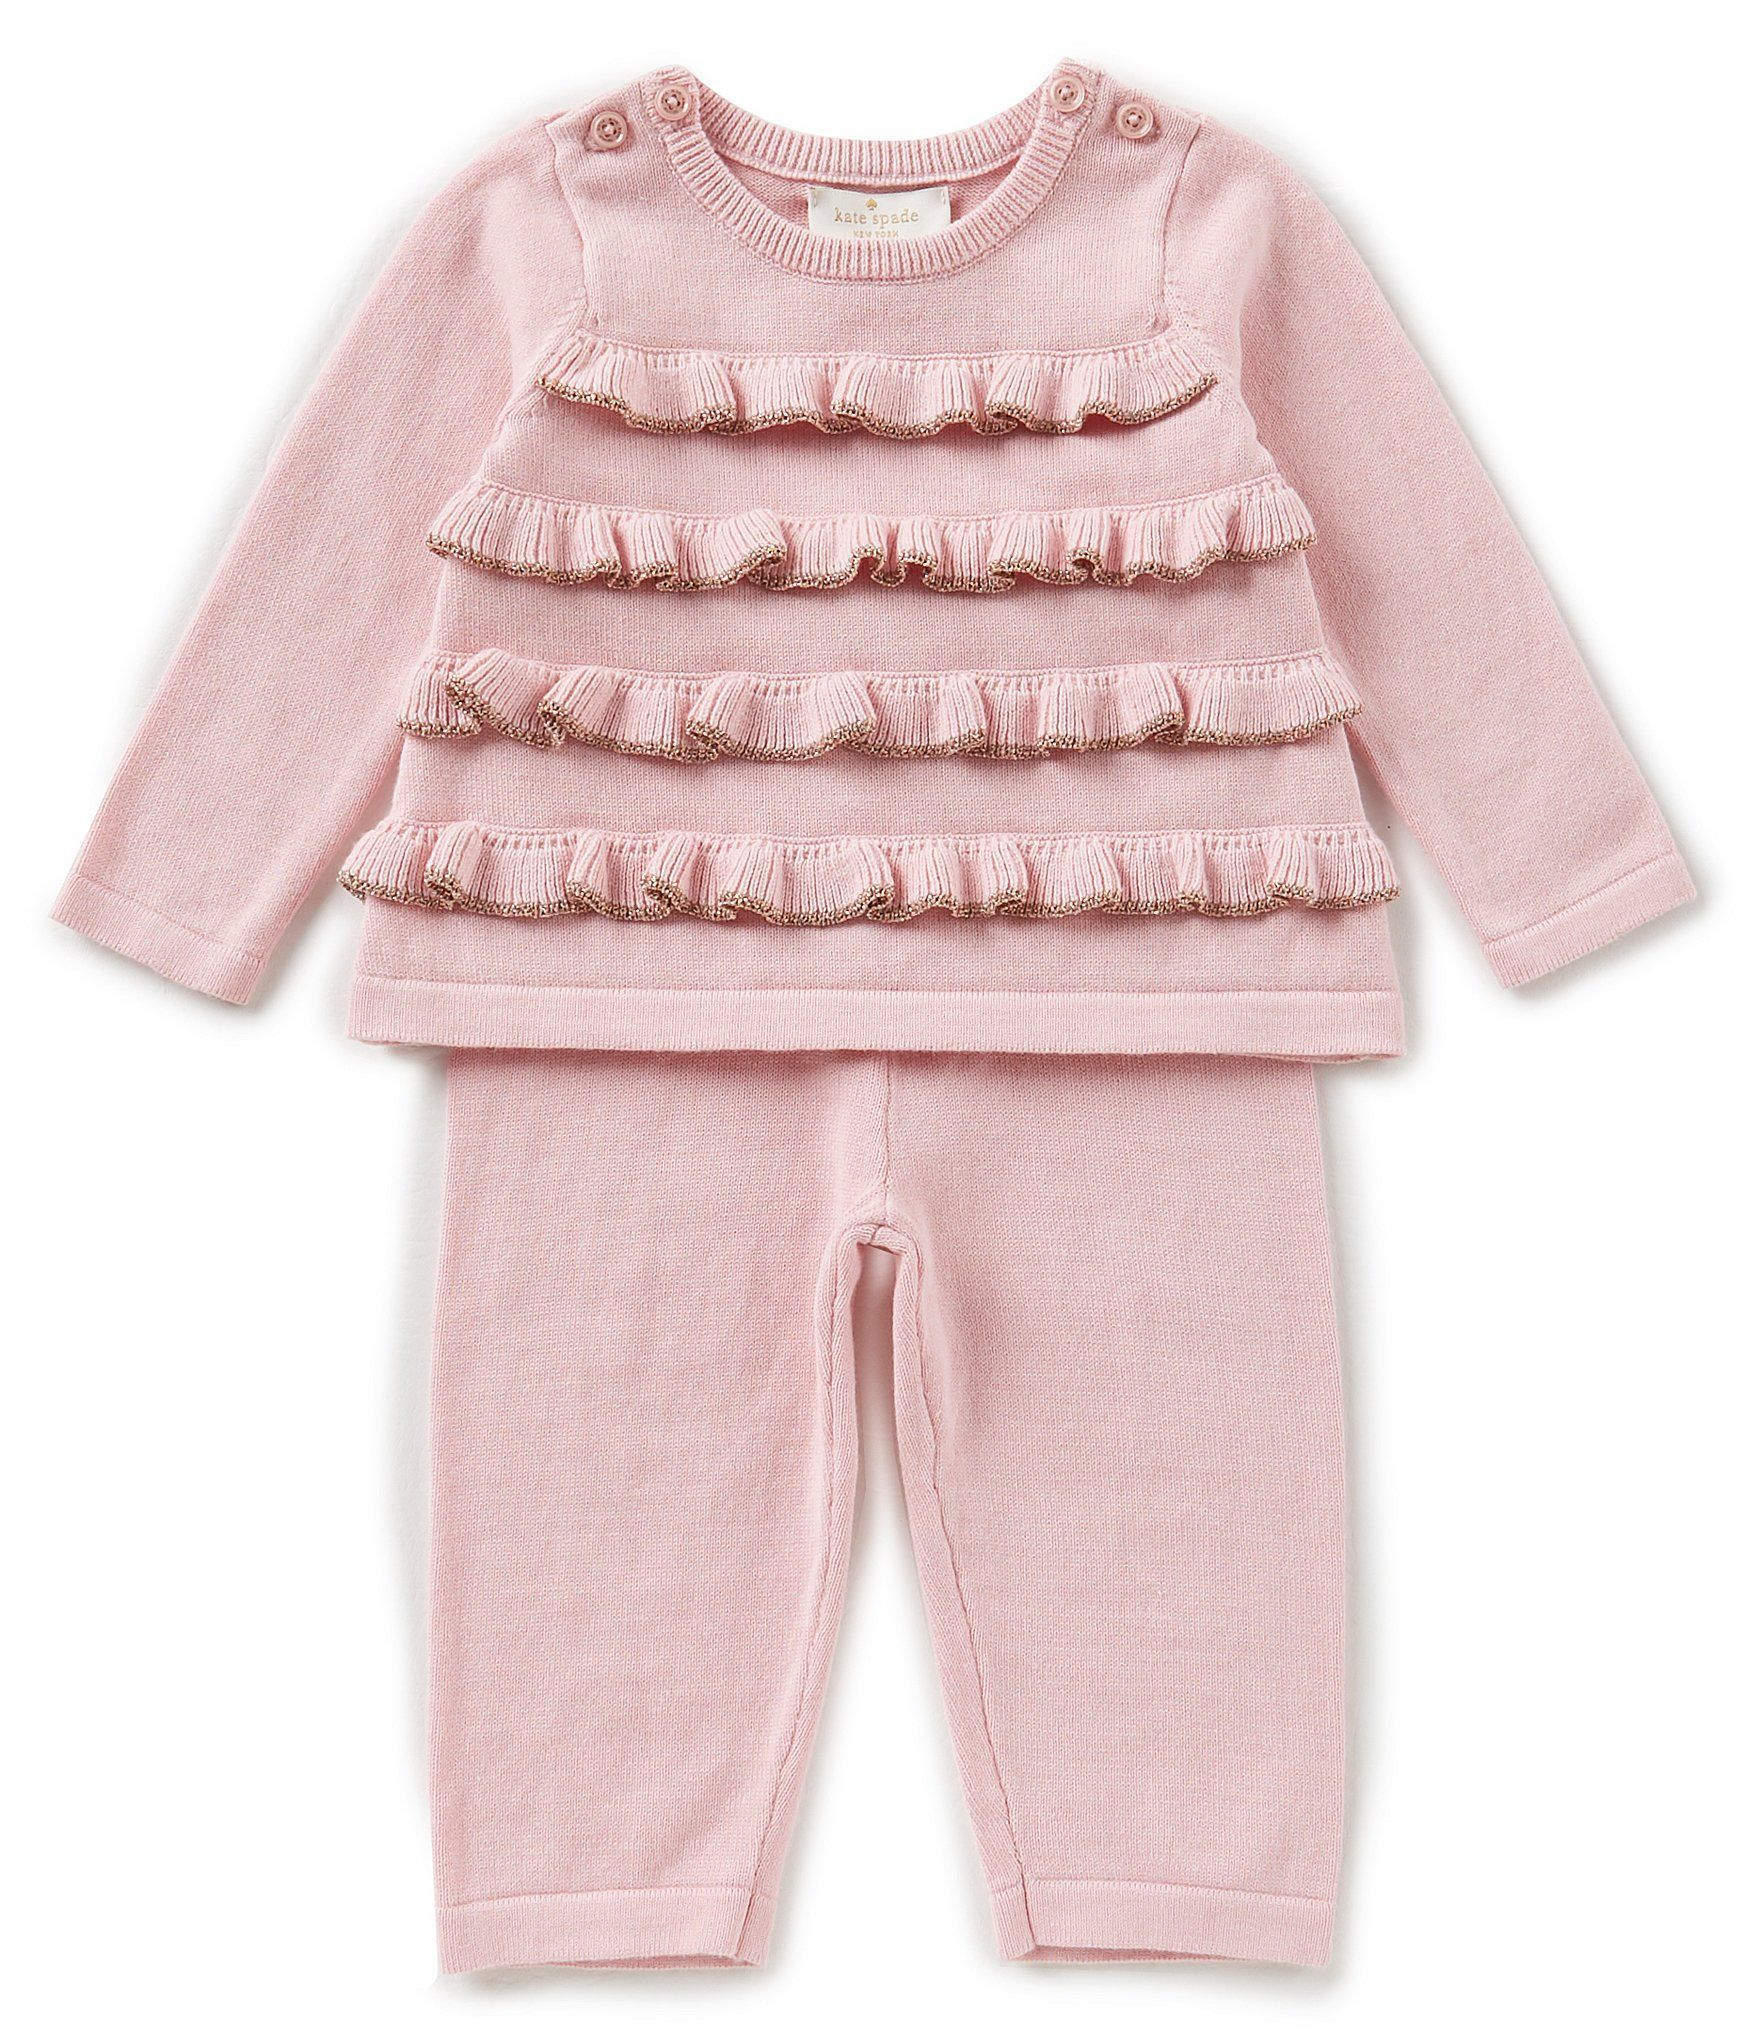 87dab1a04 Shop for kate spade new york Baby Girls 3-9 Months Ruffle Sweater ...